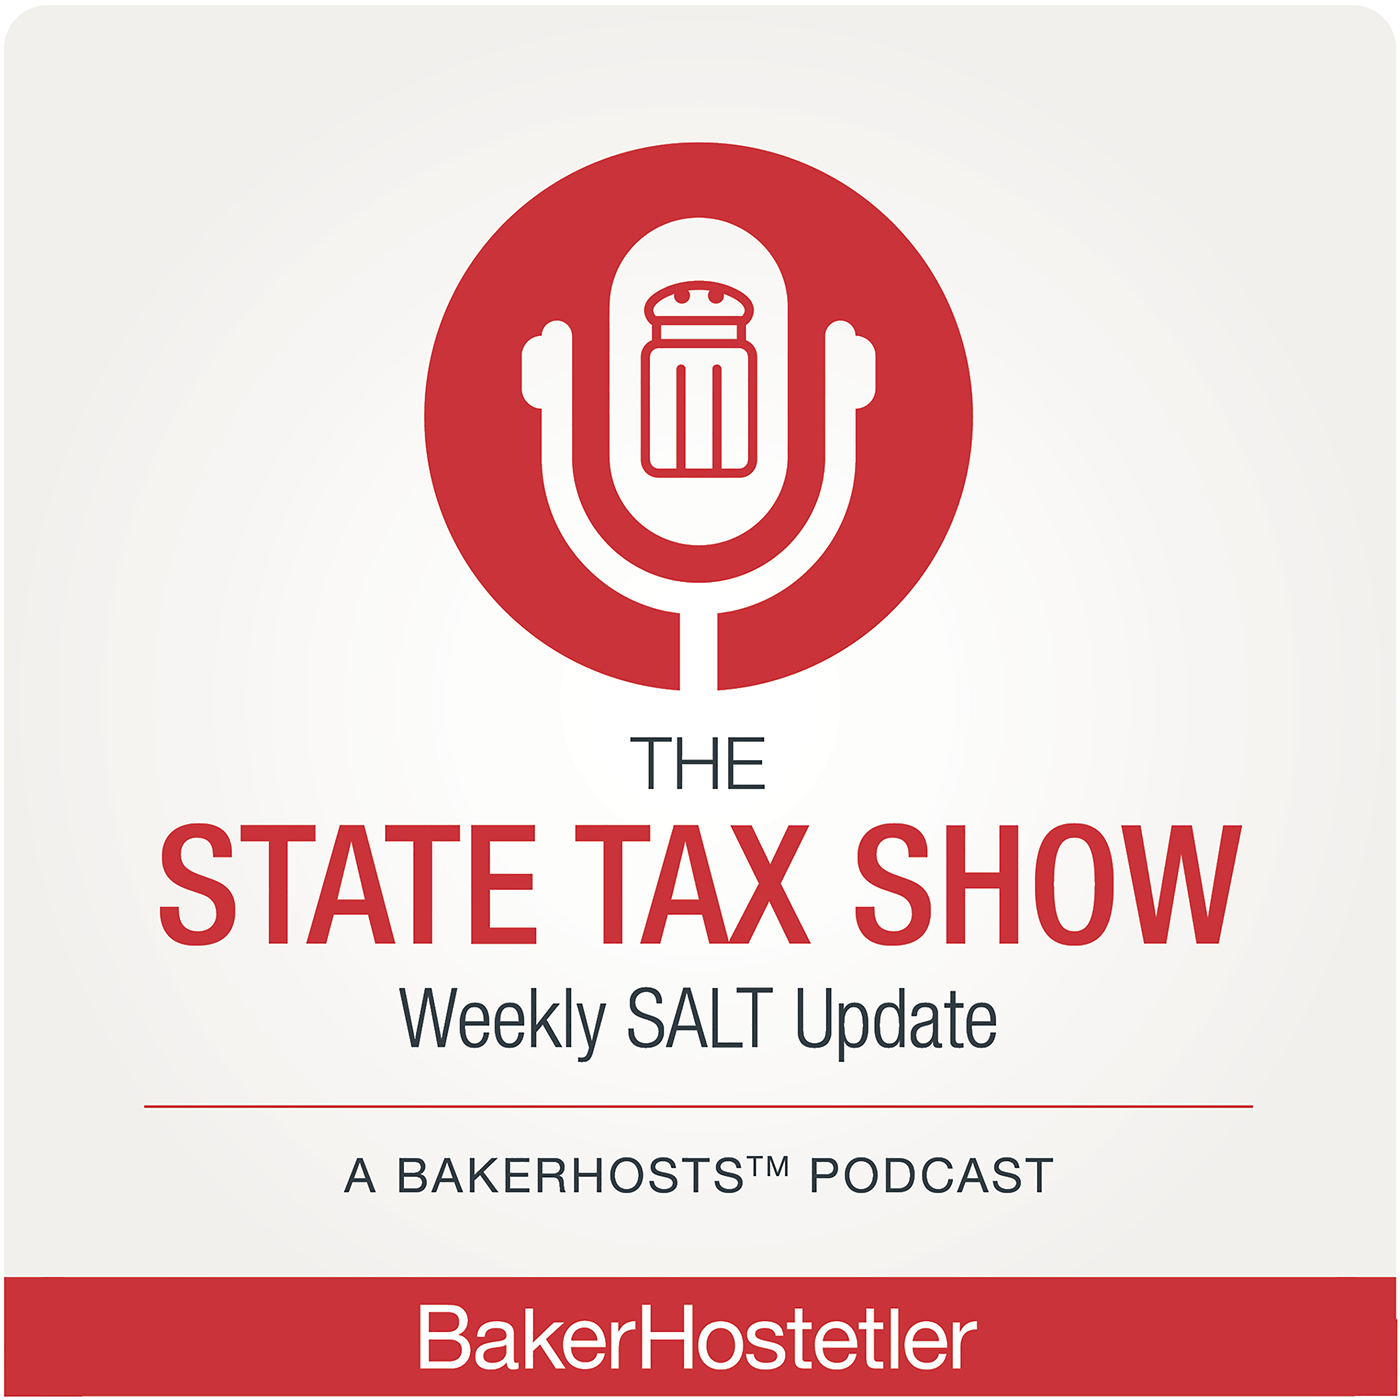 Artwork for podcast The State Tax Show